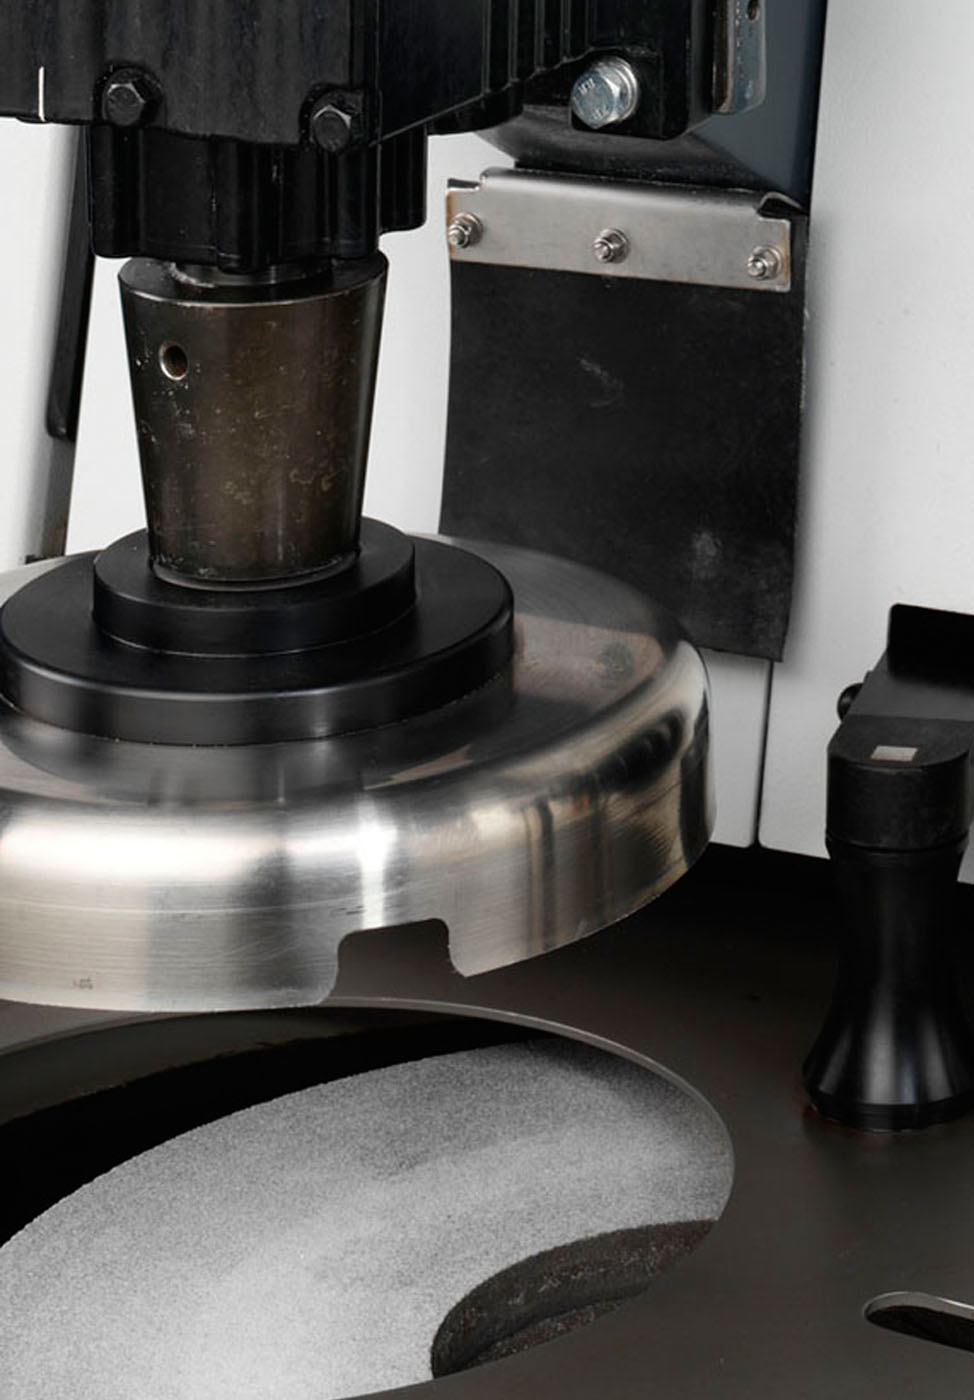 AbraPlan ideal for high volume plane grinding